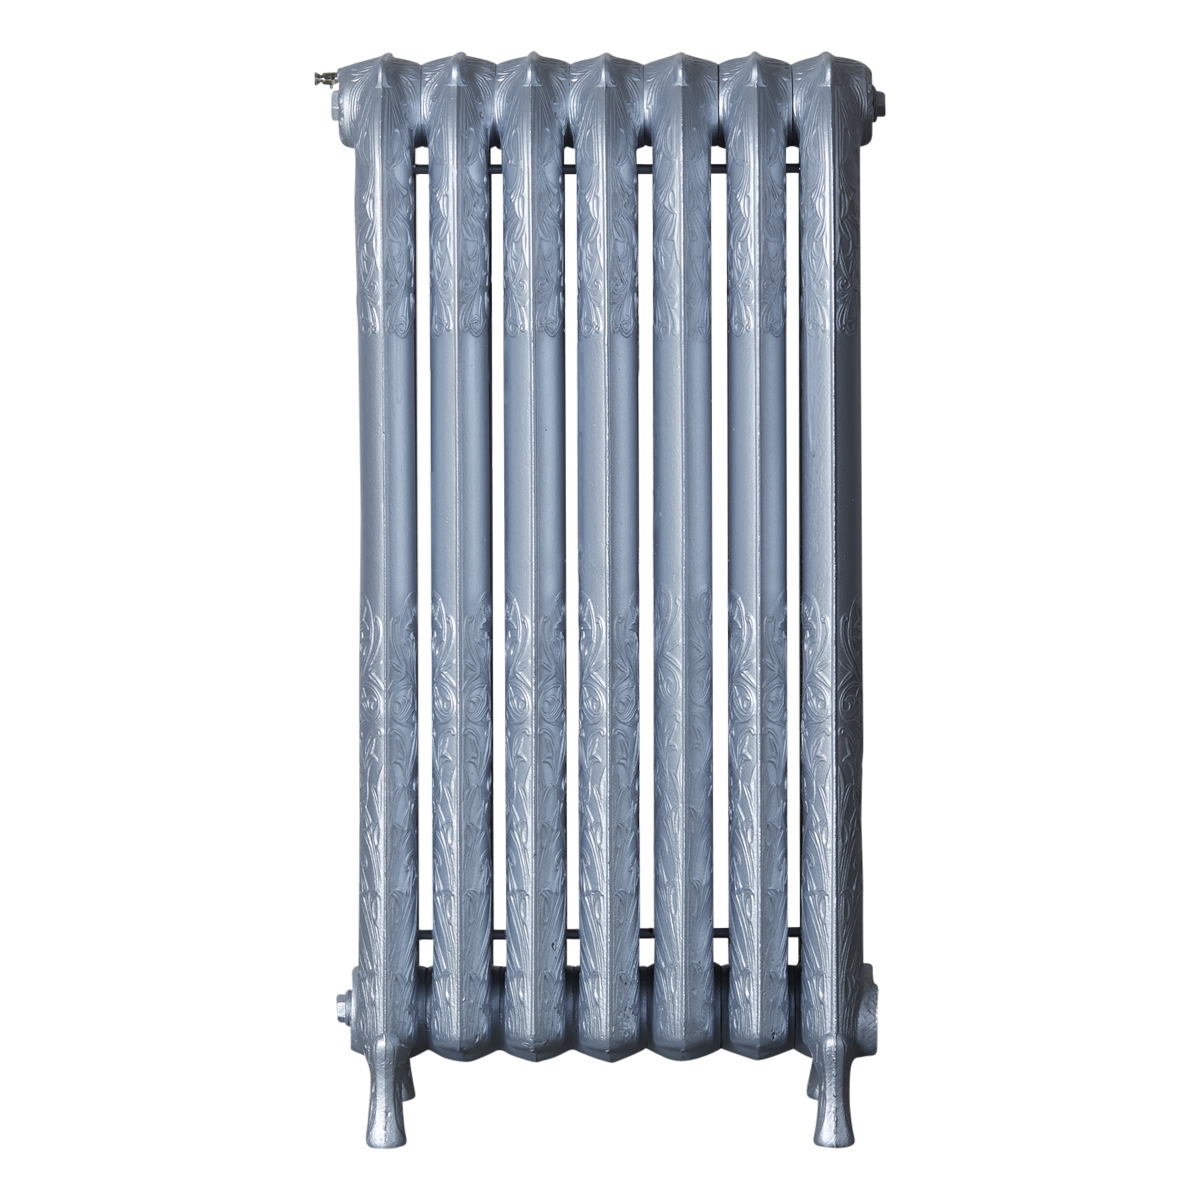 Ironworks Radiators Inc. refurbished cast iron radiator Foxhill in Platinum Metallic